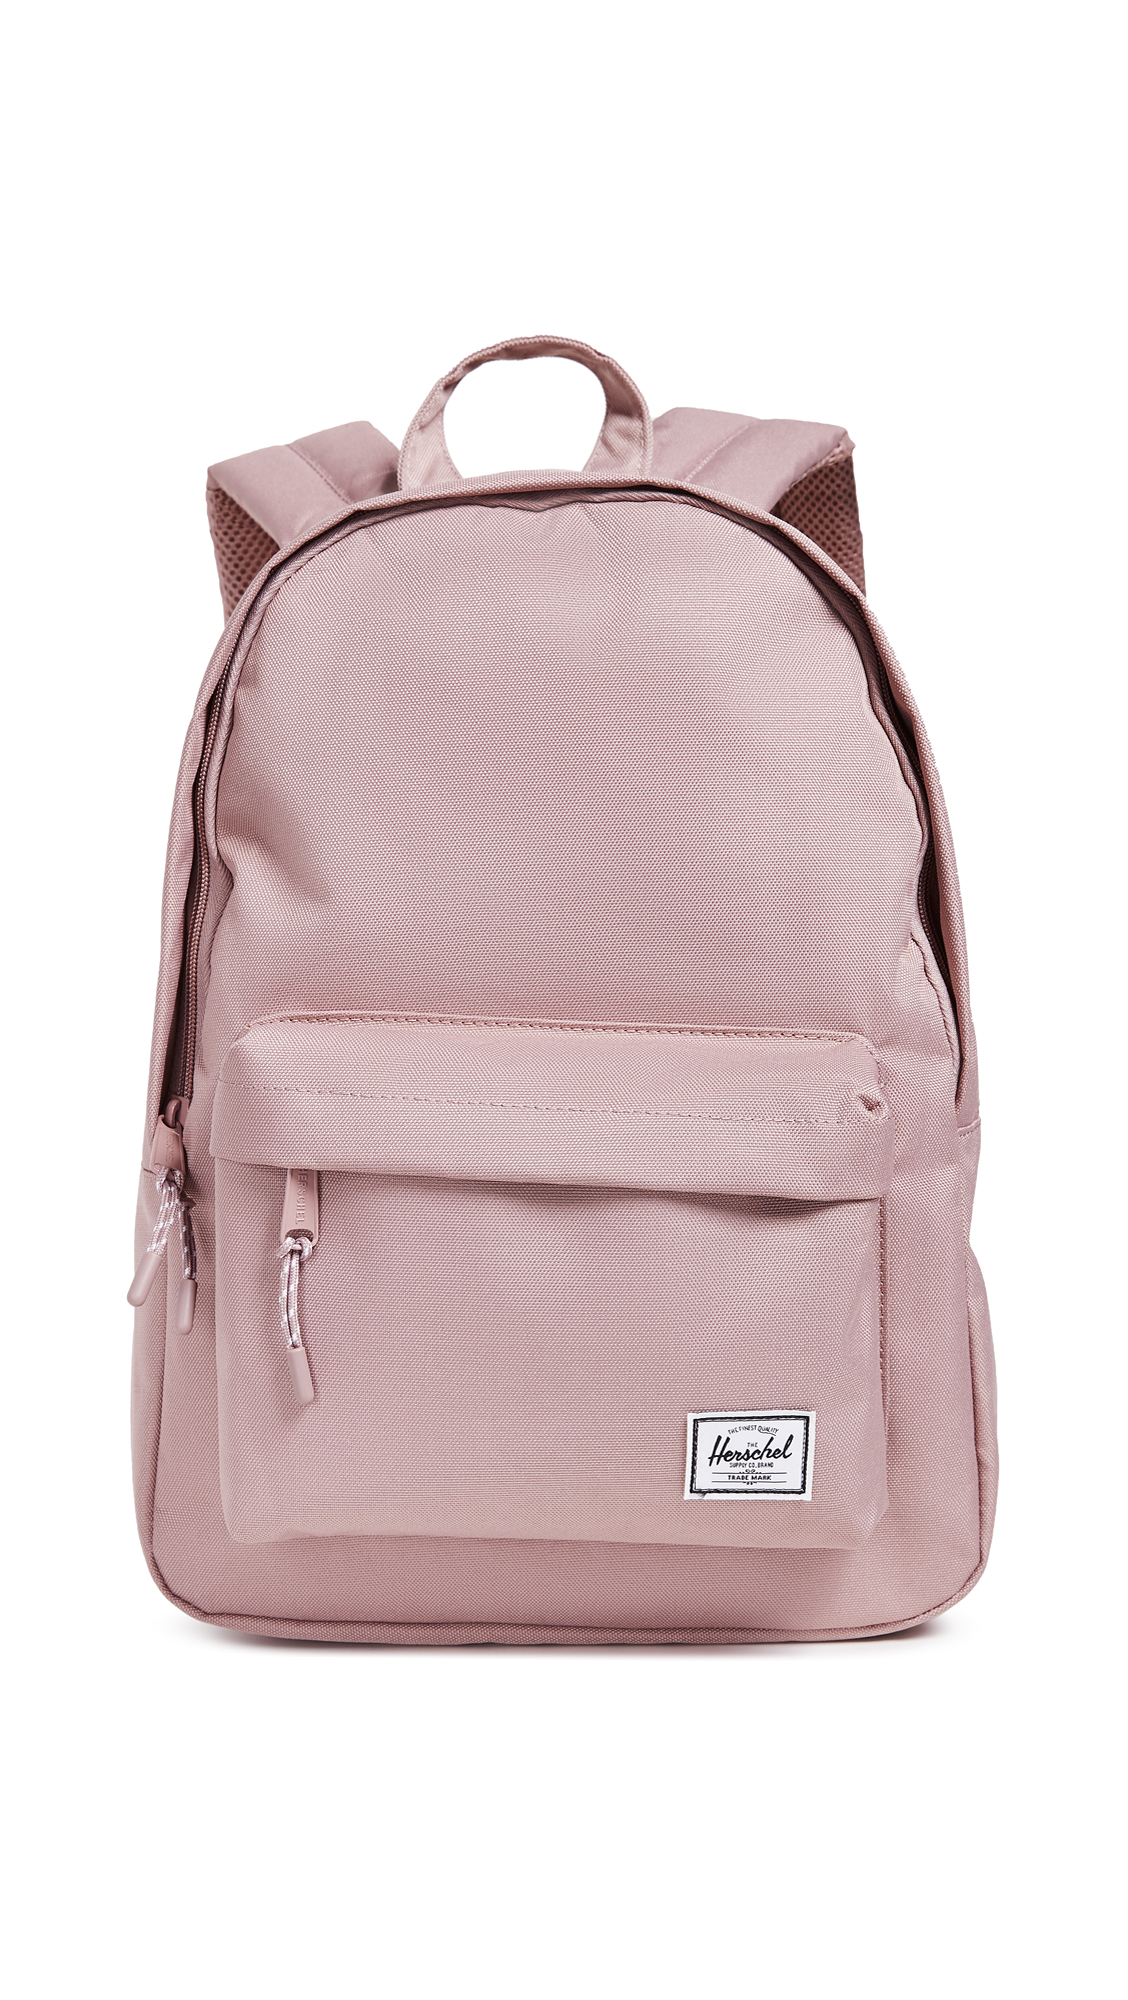 CLASSIC MID VOLUME BACKPACK - PINK